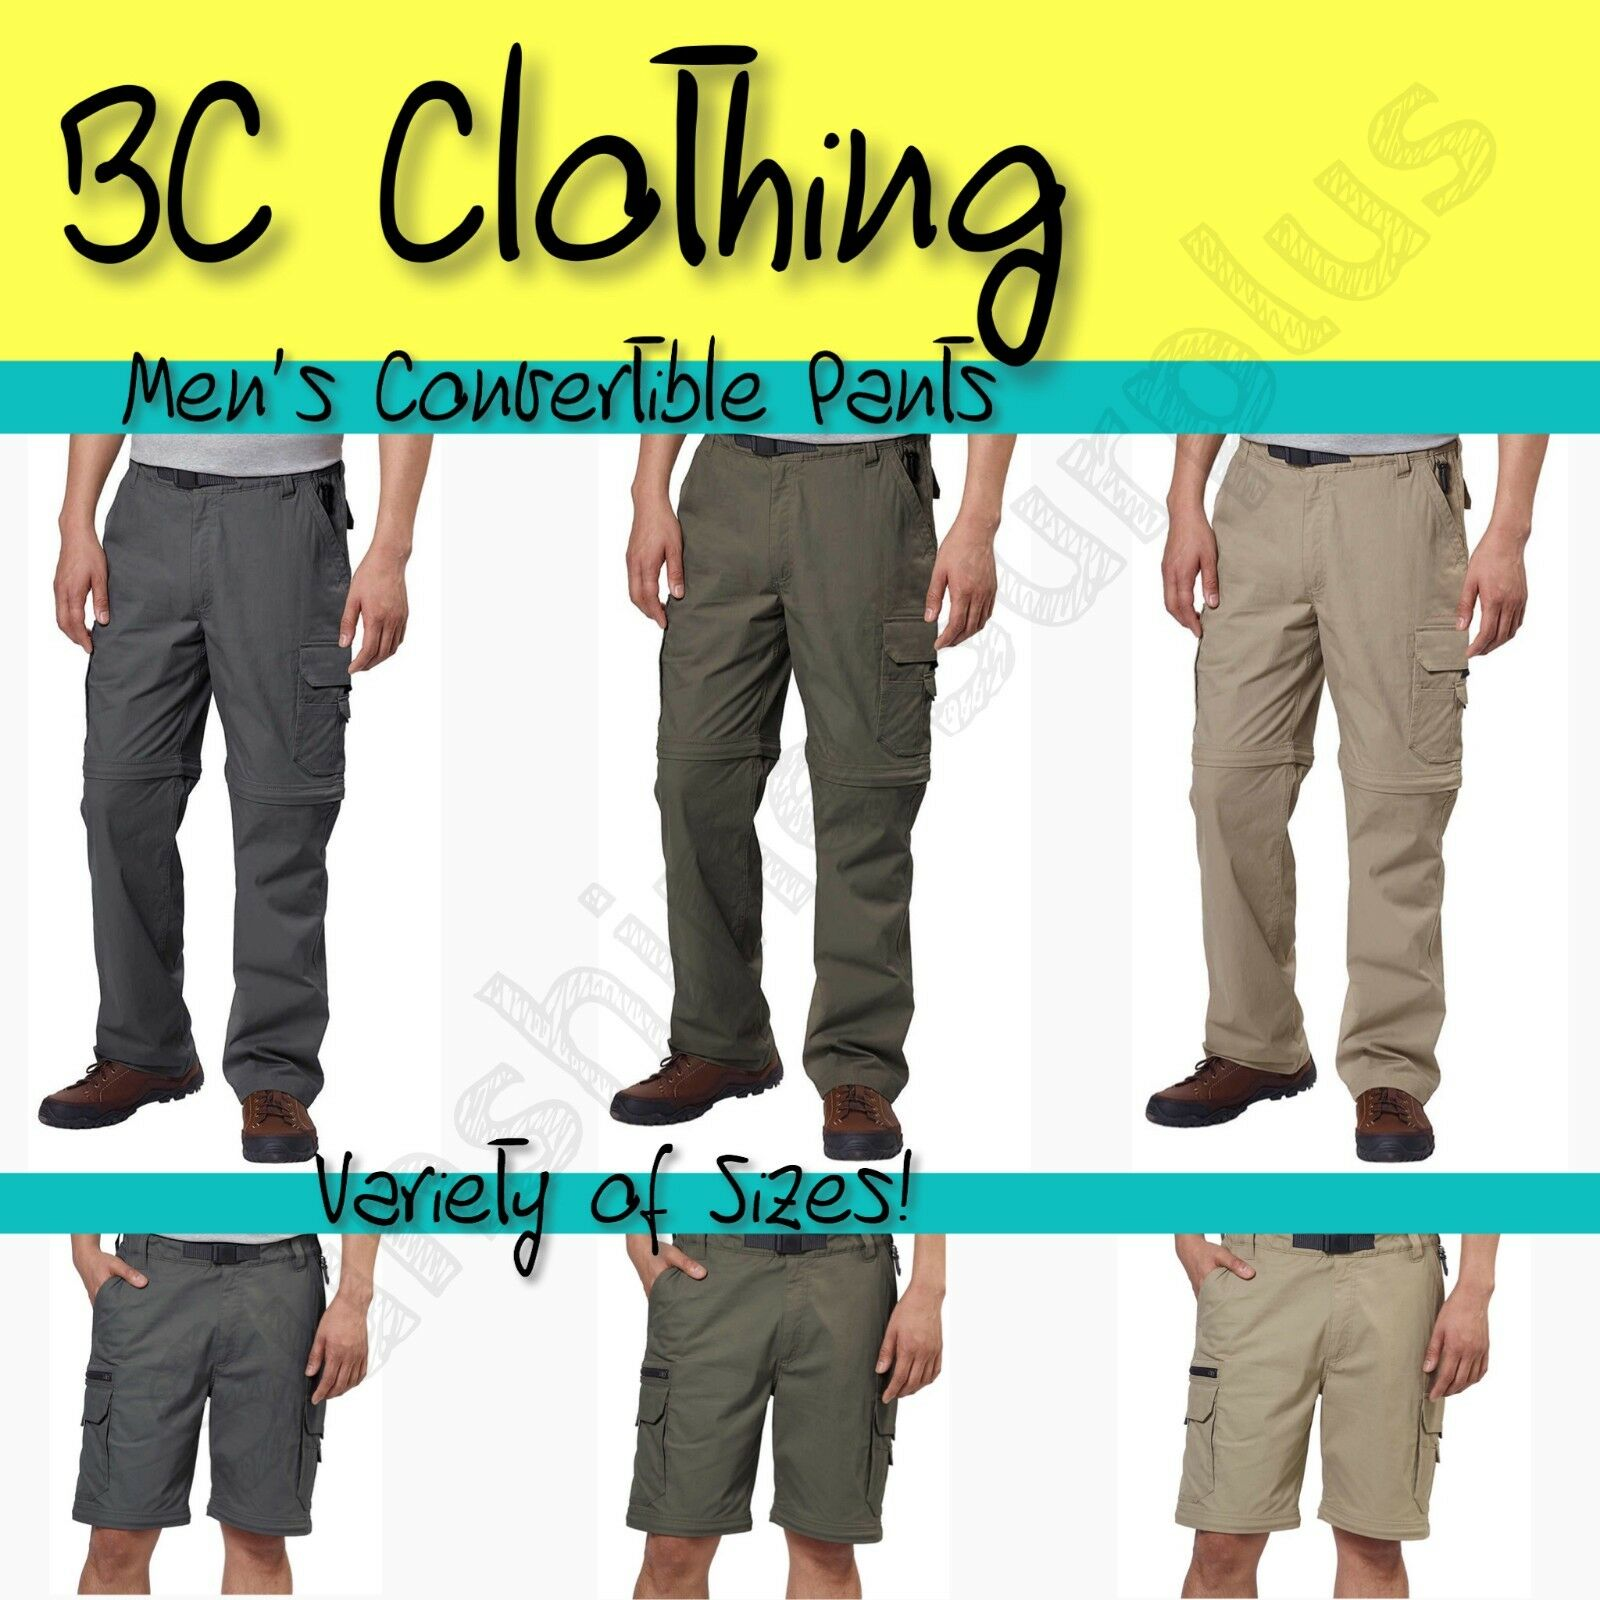 NEW BC Clothing Men's Convertible Stretch Cargo Hiking Activ